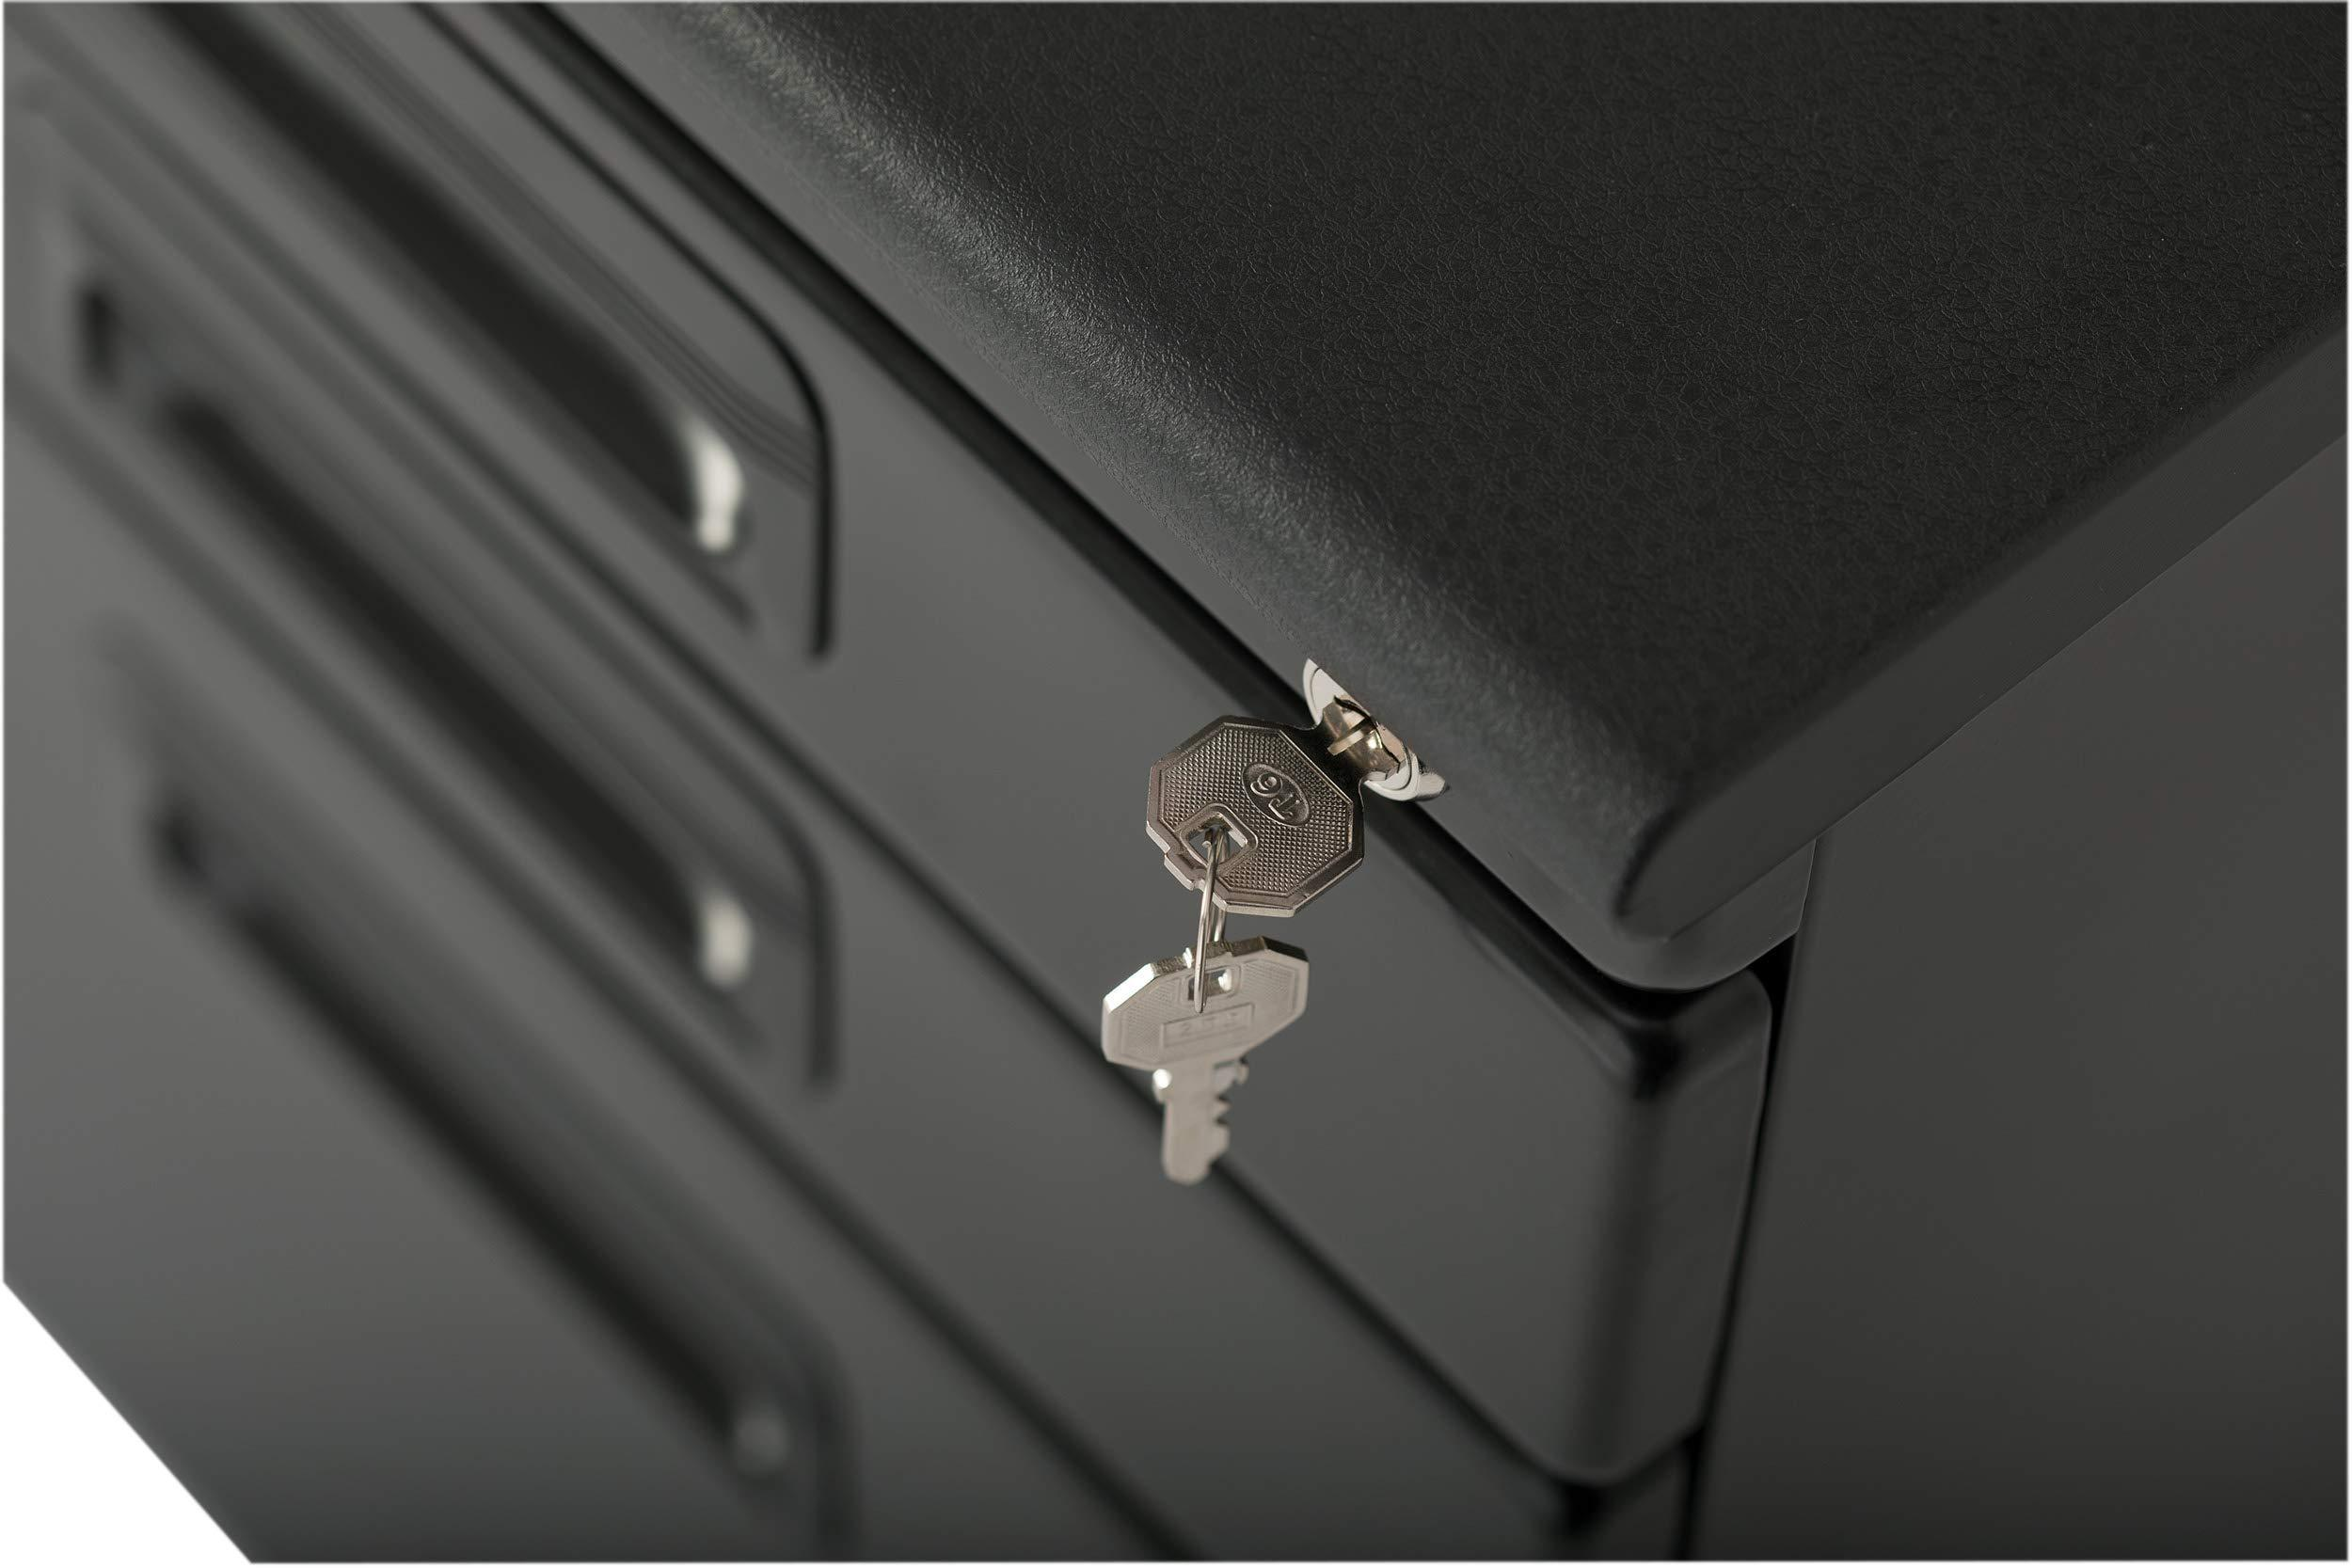 Featured craft hobby essentials 62002 metal 3 vertical mobile filing cabinet 15 75 w x 22 d craft supply storage with locking drawers in black